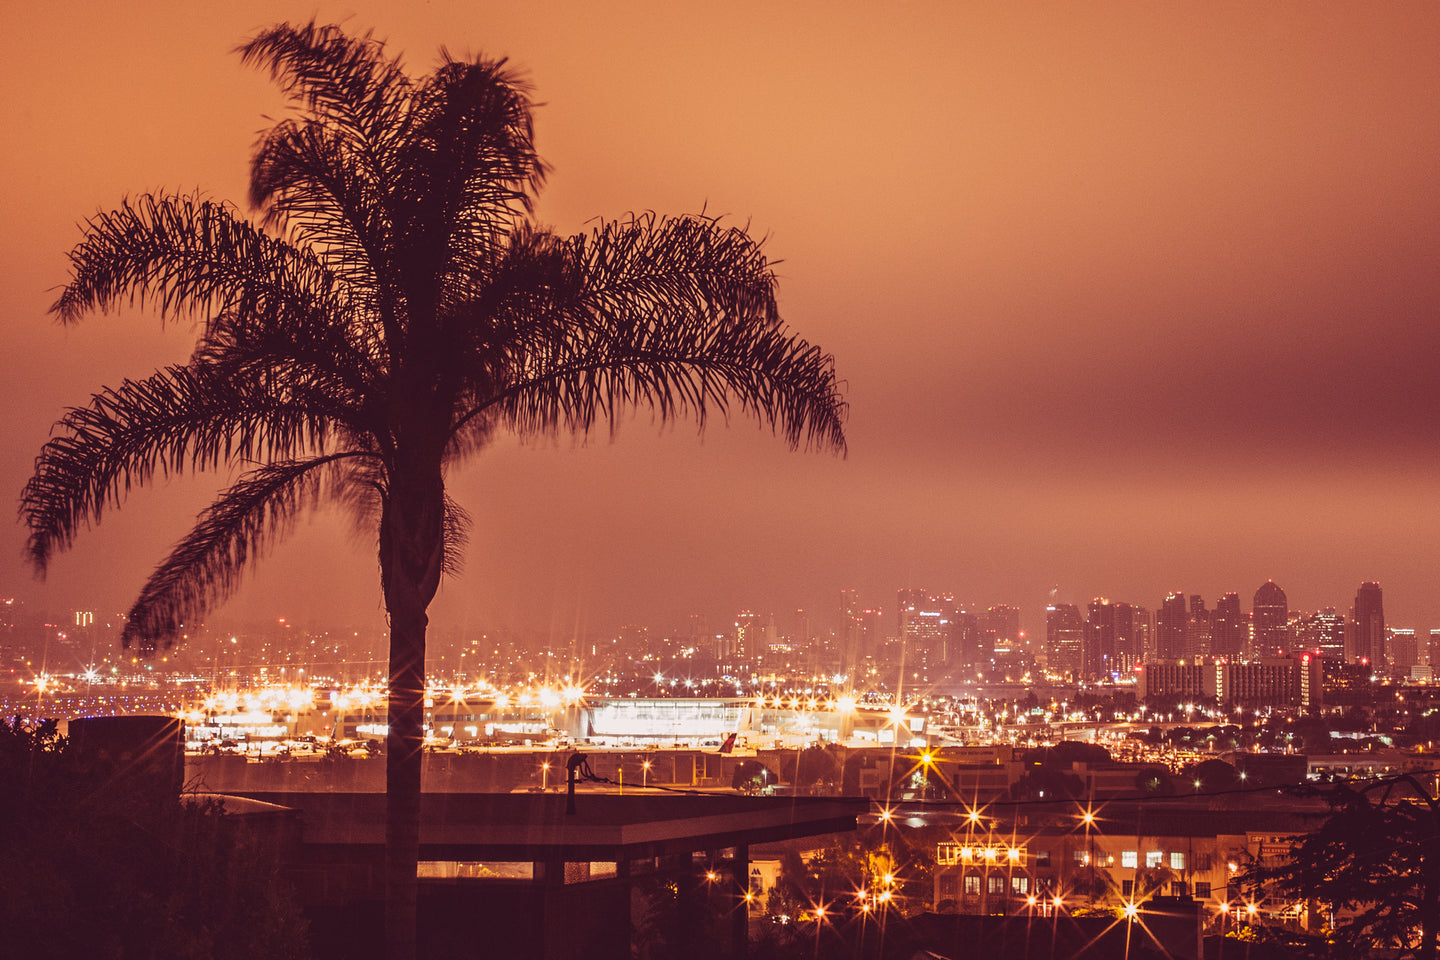 SAN DIEGO NIGHTS